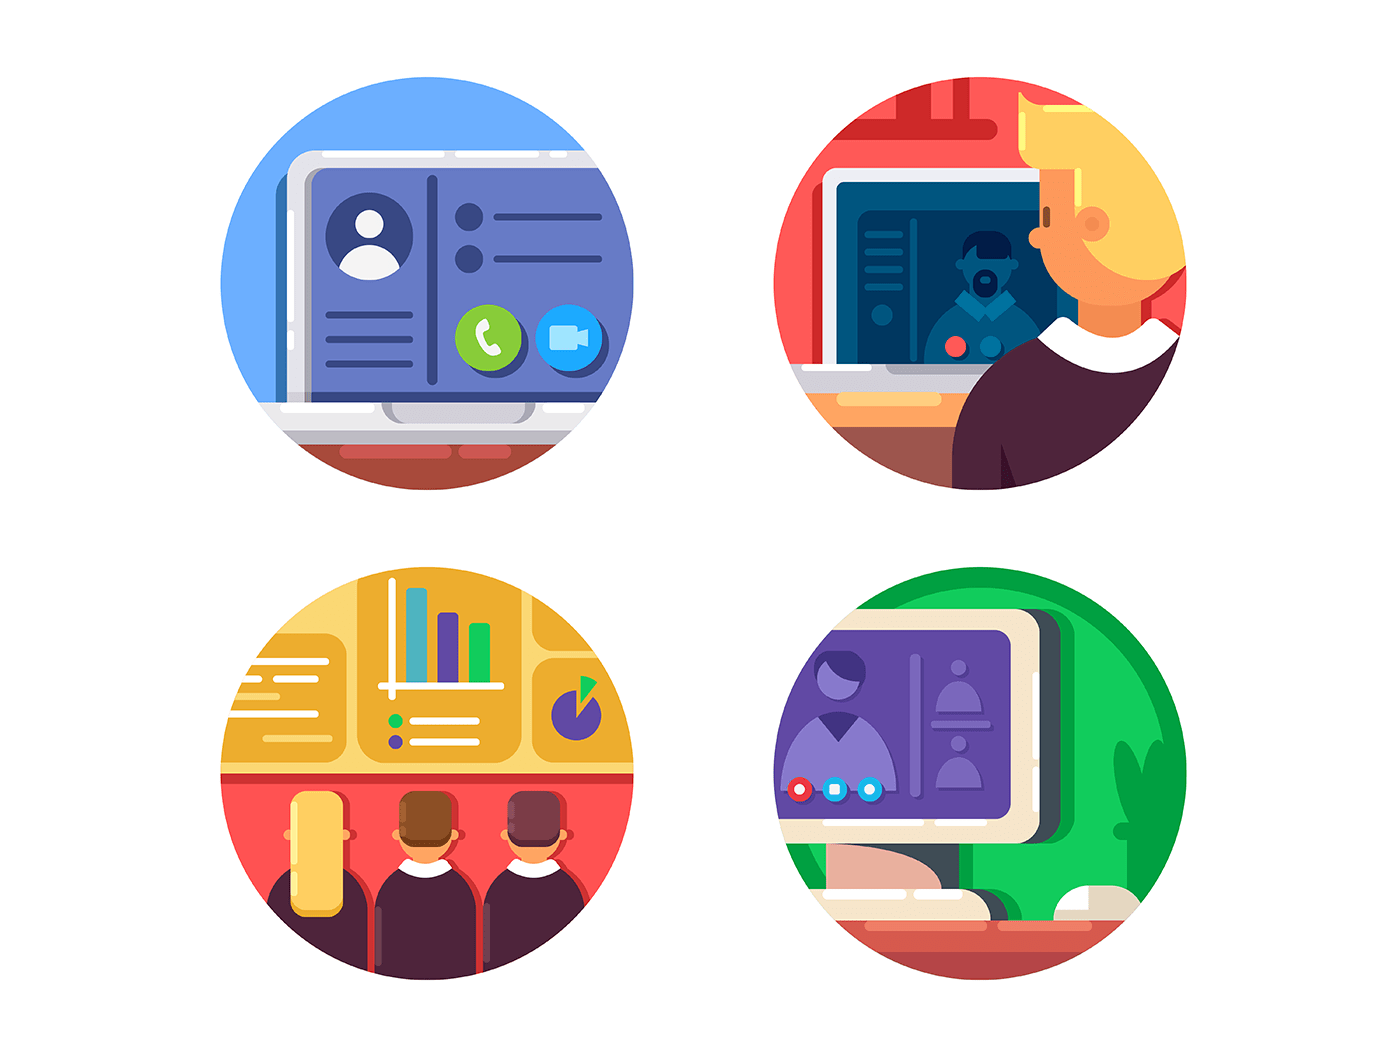 Meeting or web conference icons